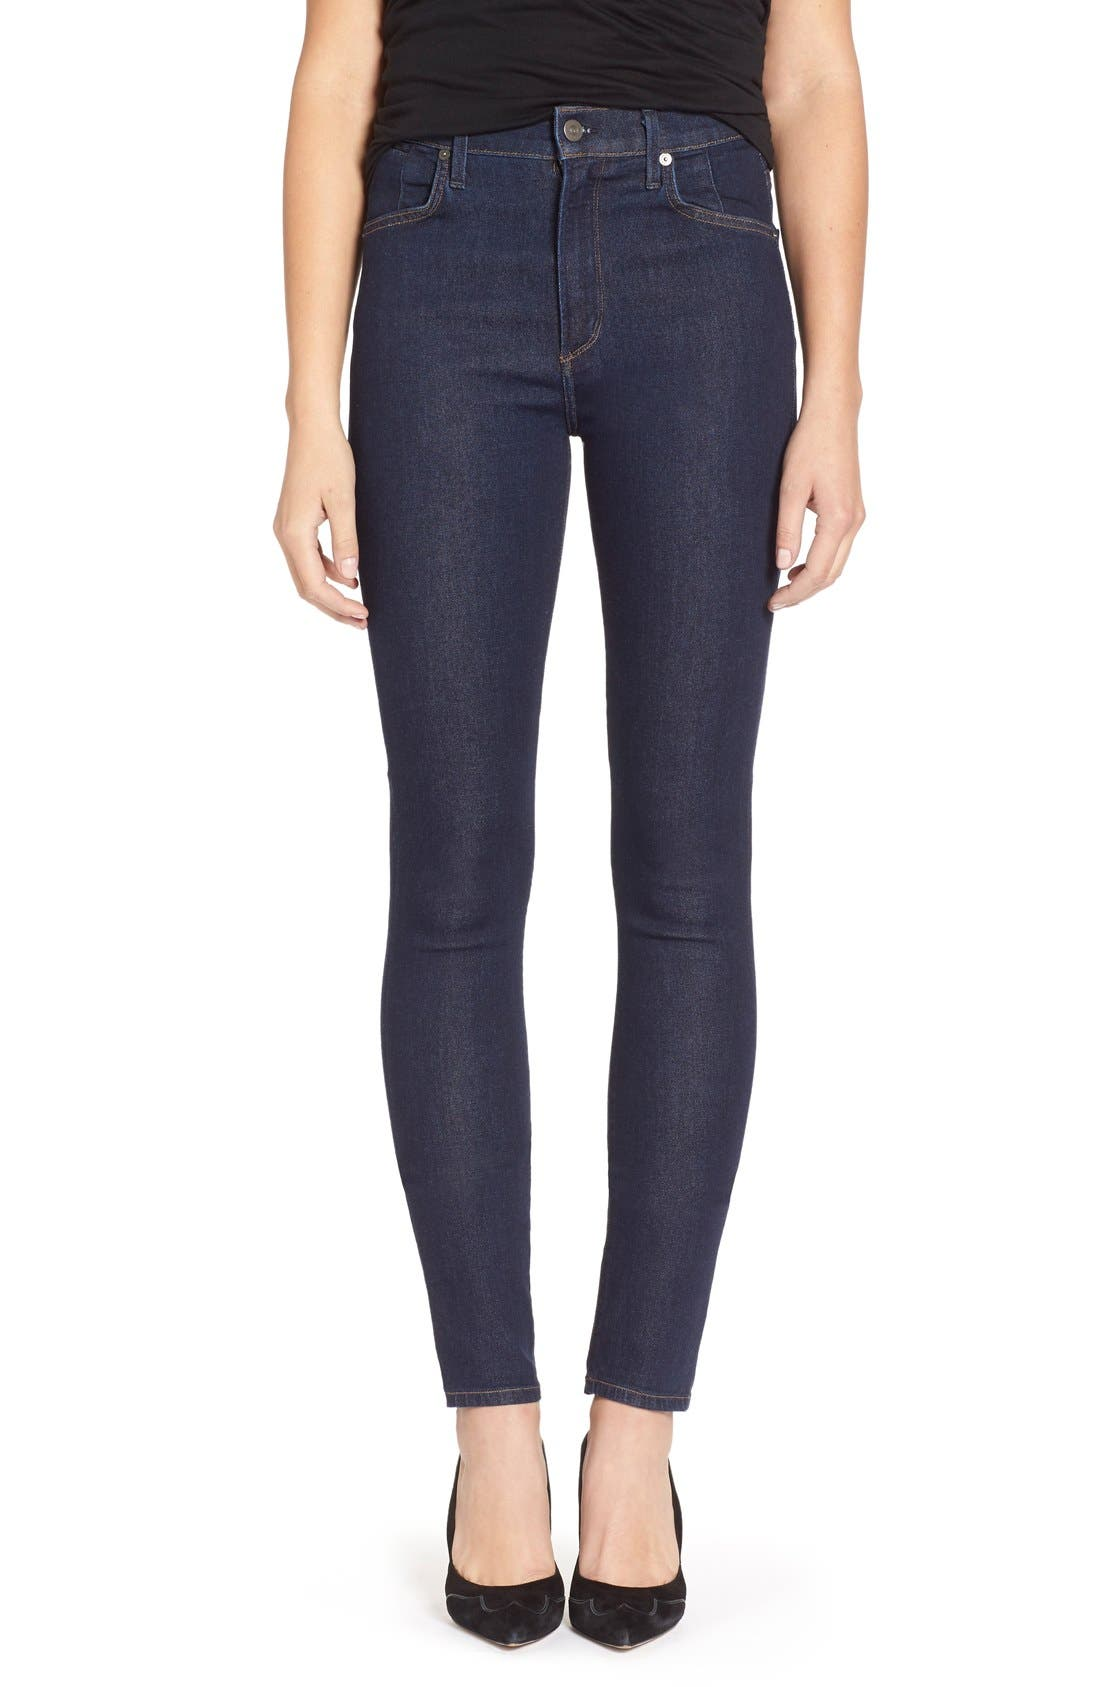 'Carlie' High Rise Skinny Jeans, Main, color, 406